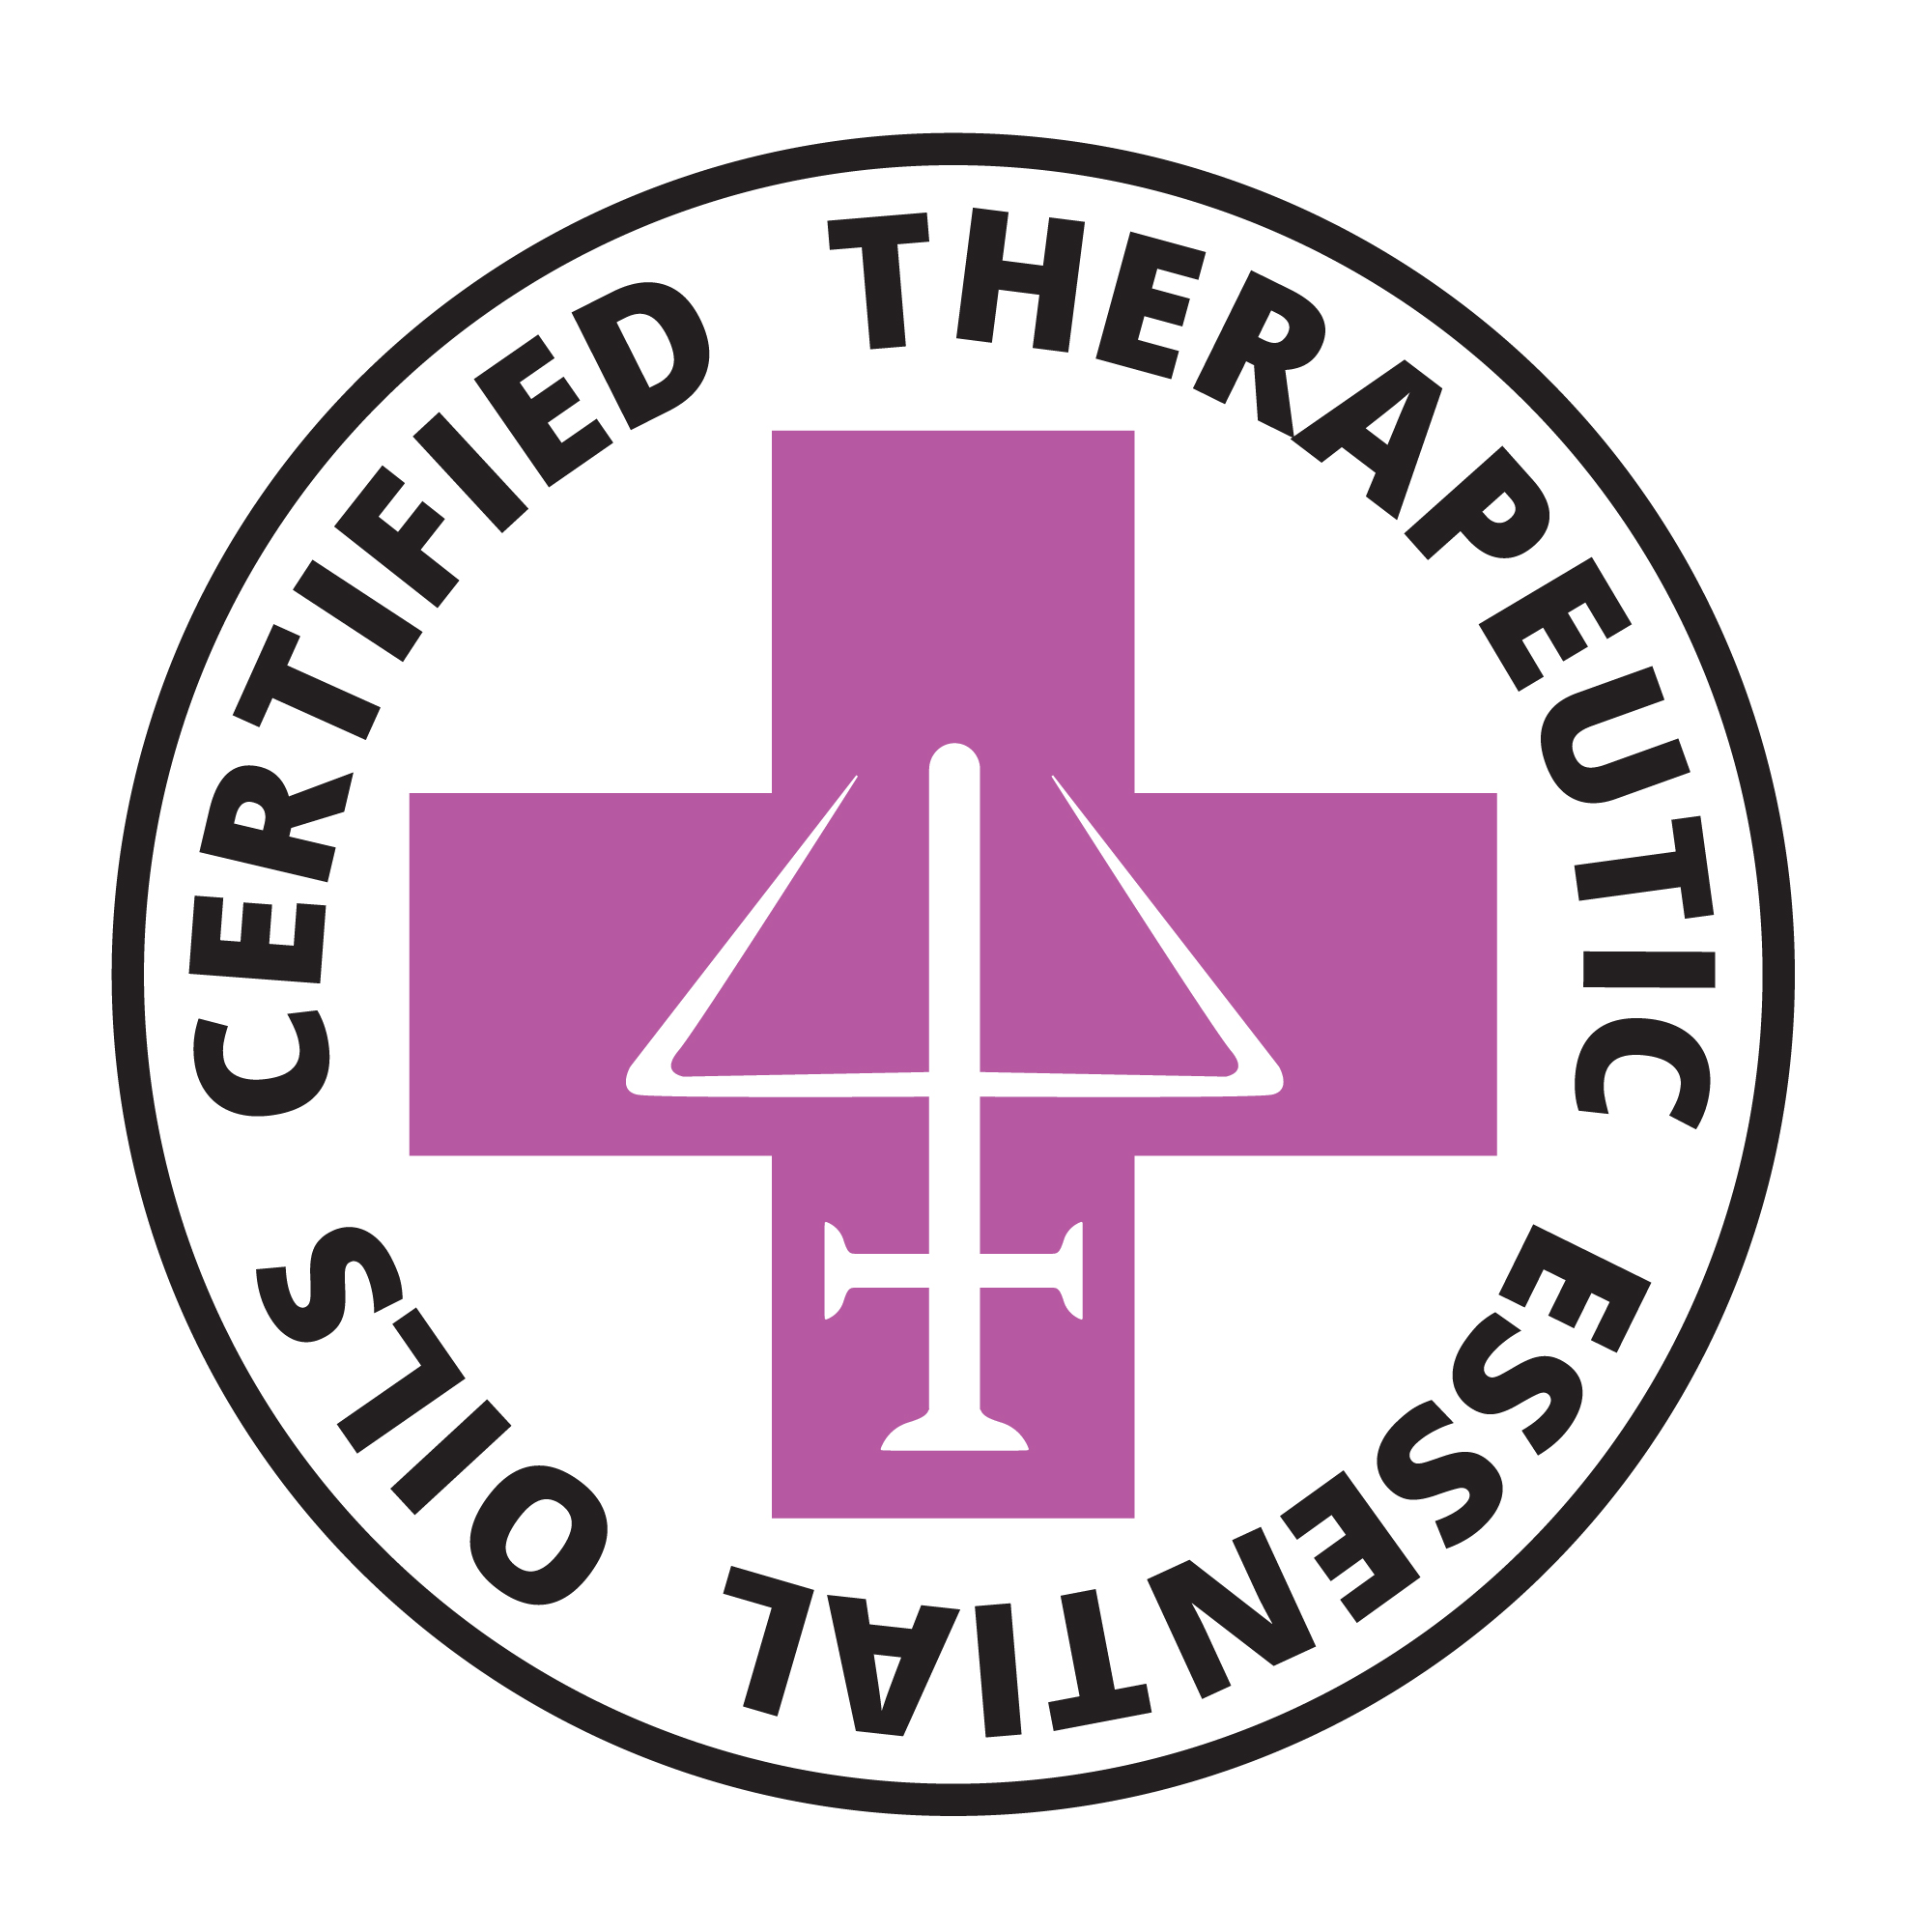 Certified therapeutic essential oils BEWIT